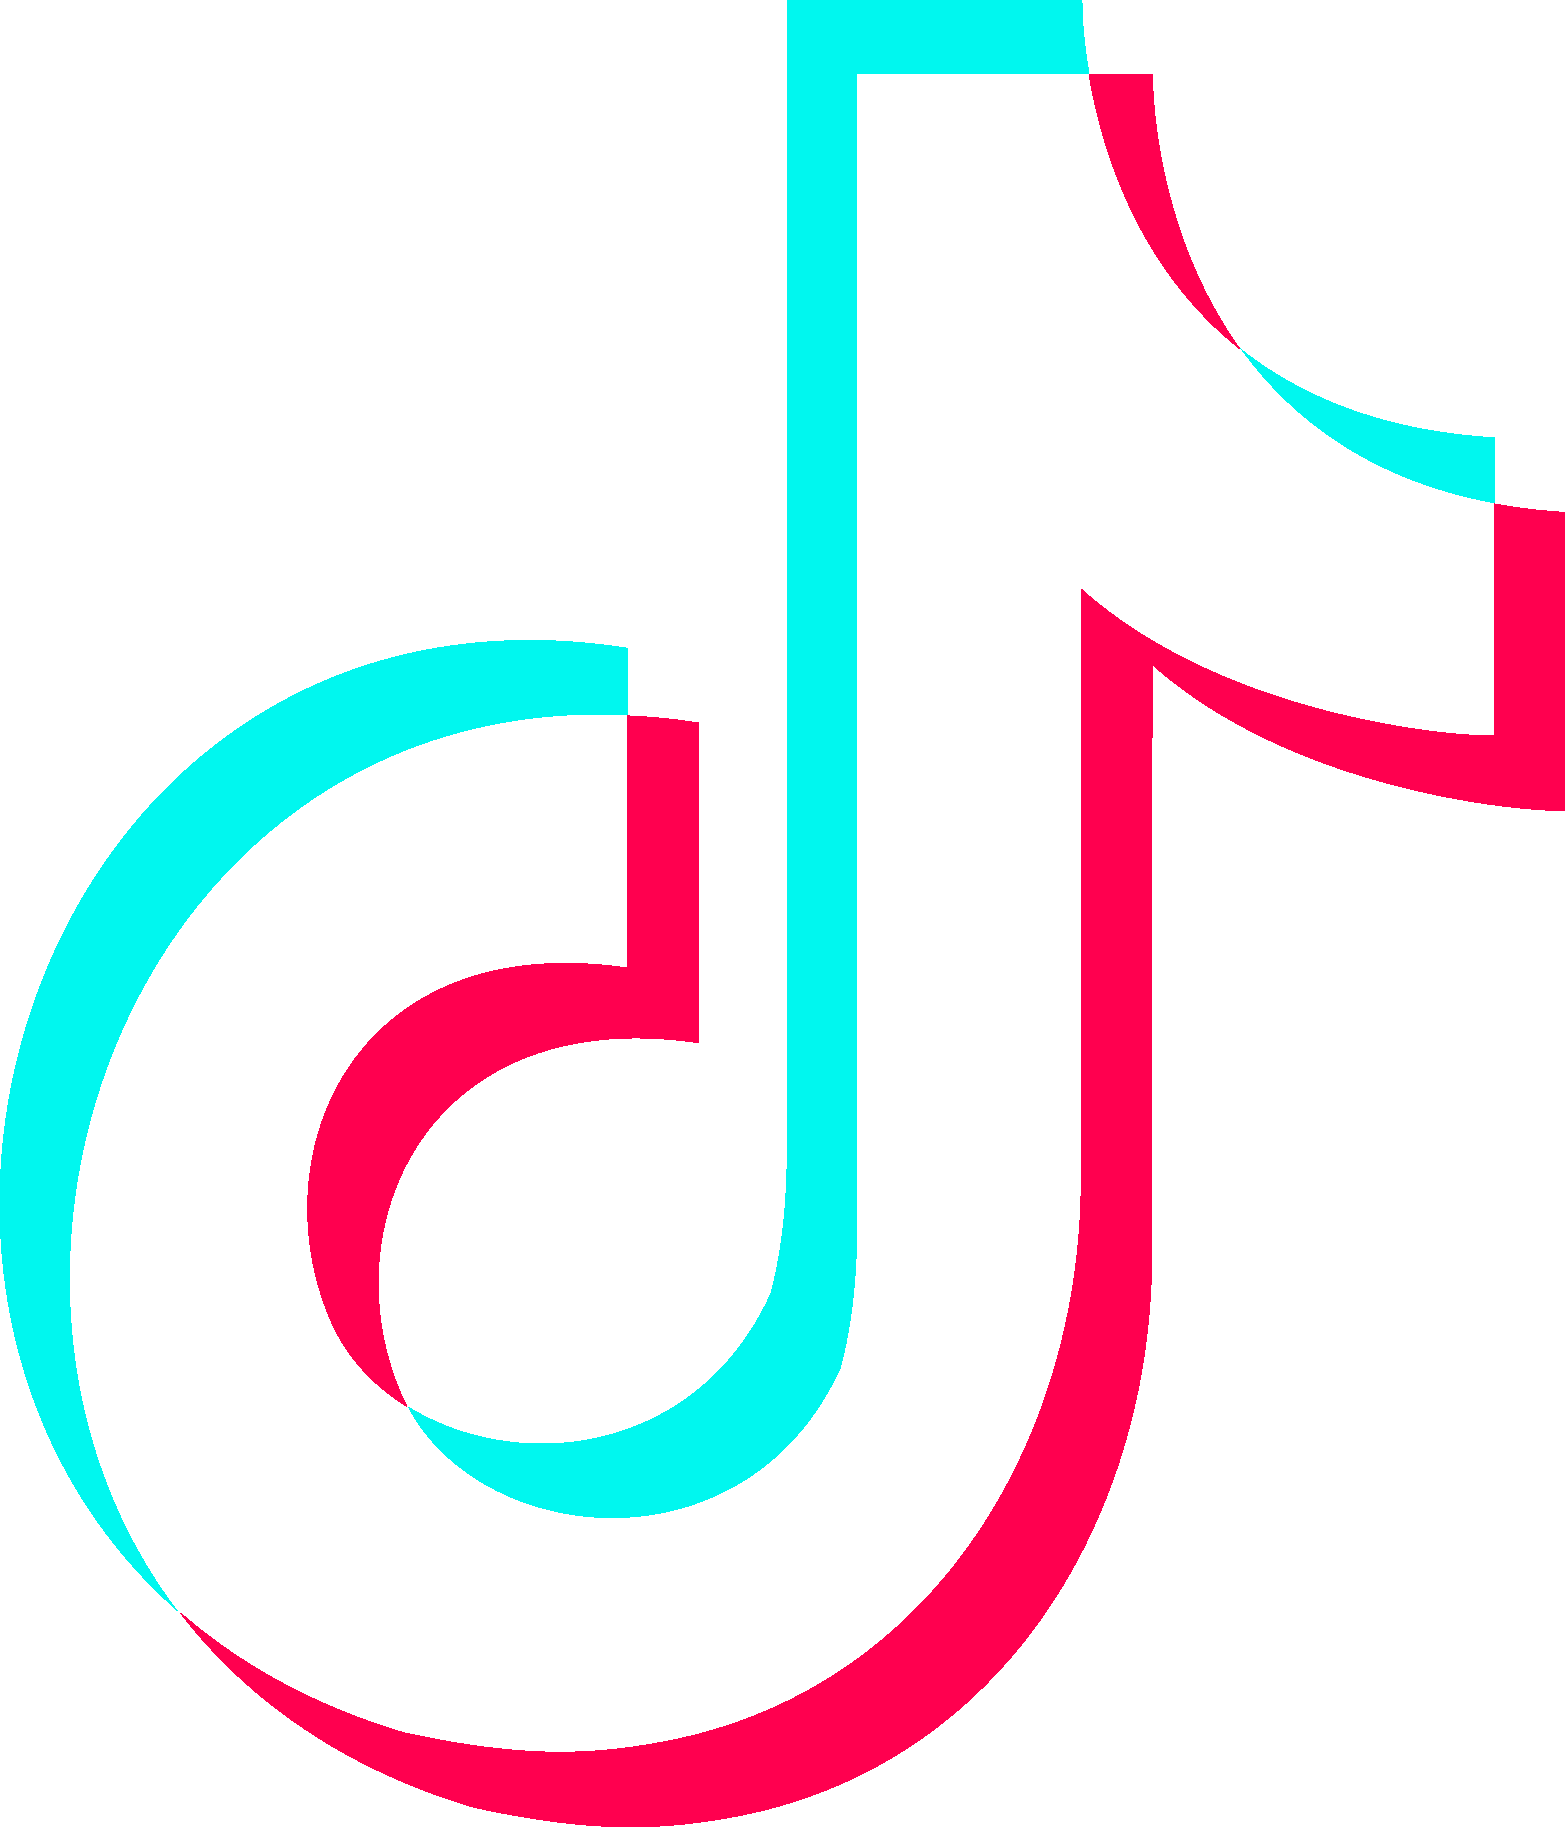 Tik Tok Logo (Musical.ly).